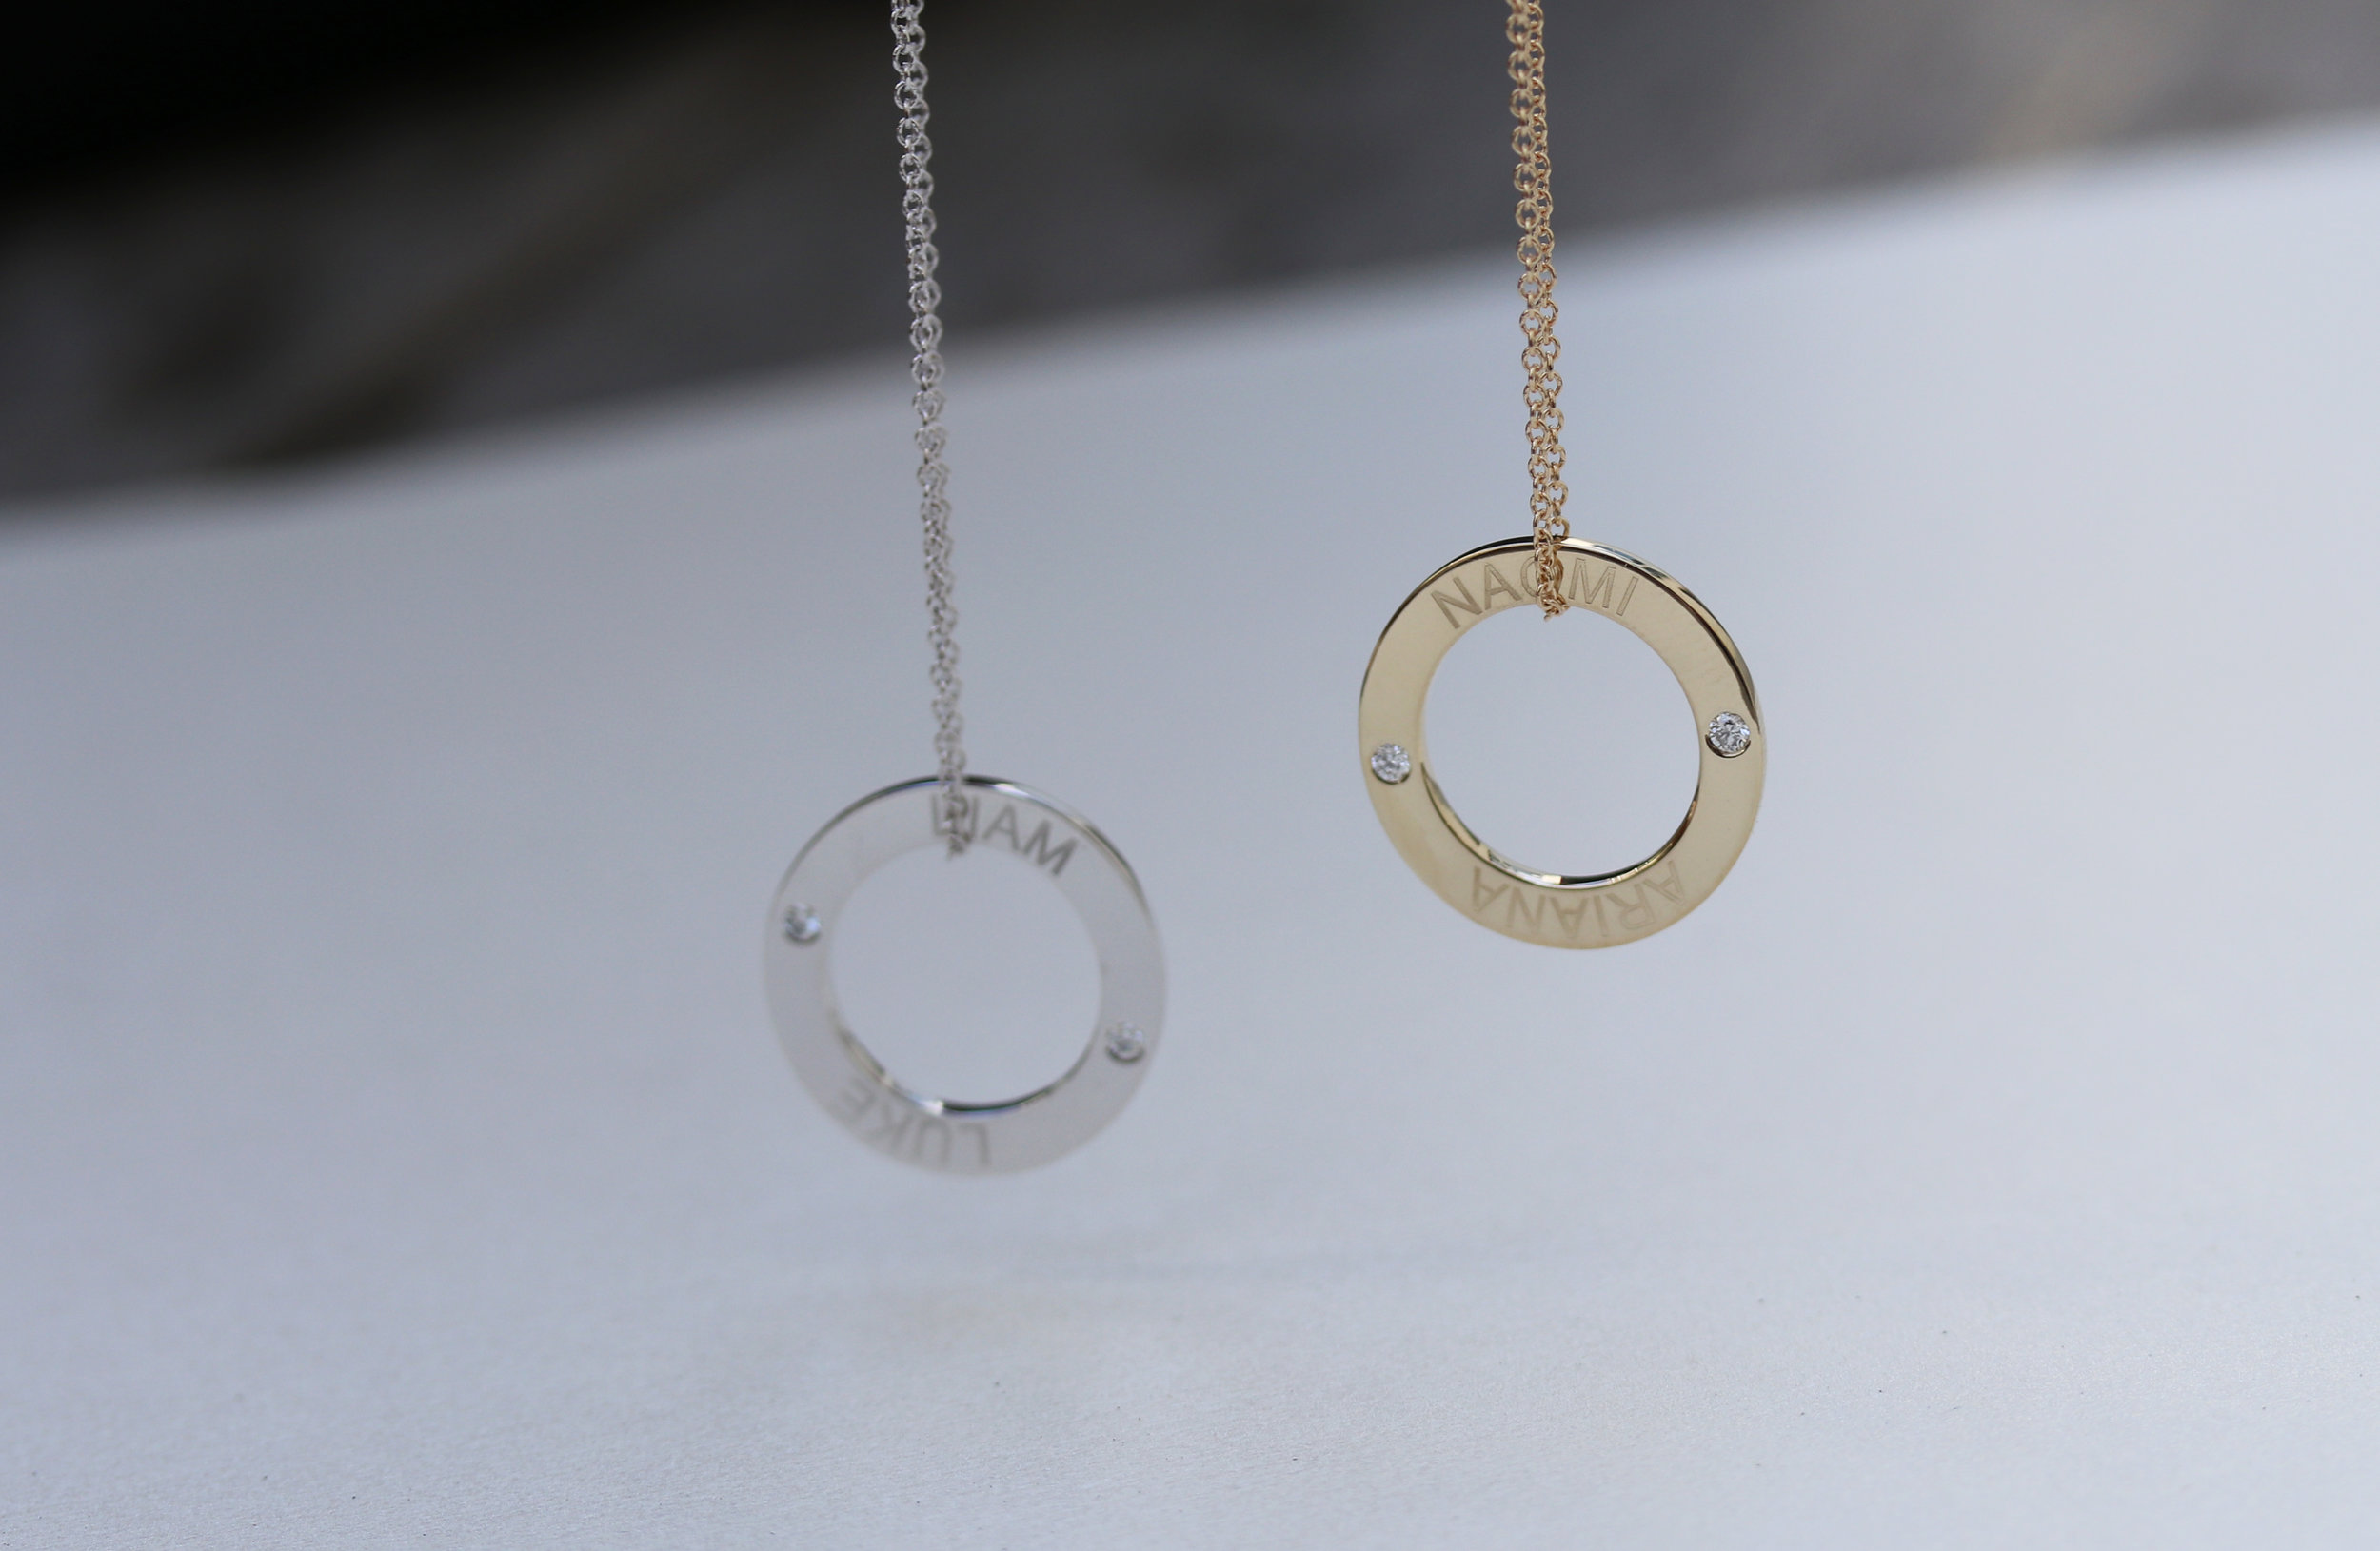 white gold and yellow gold lab diamond circle pendant necklace Mother's Day gift engraved with children's names